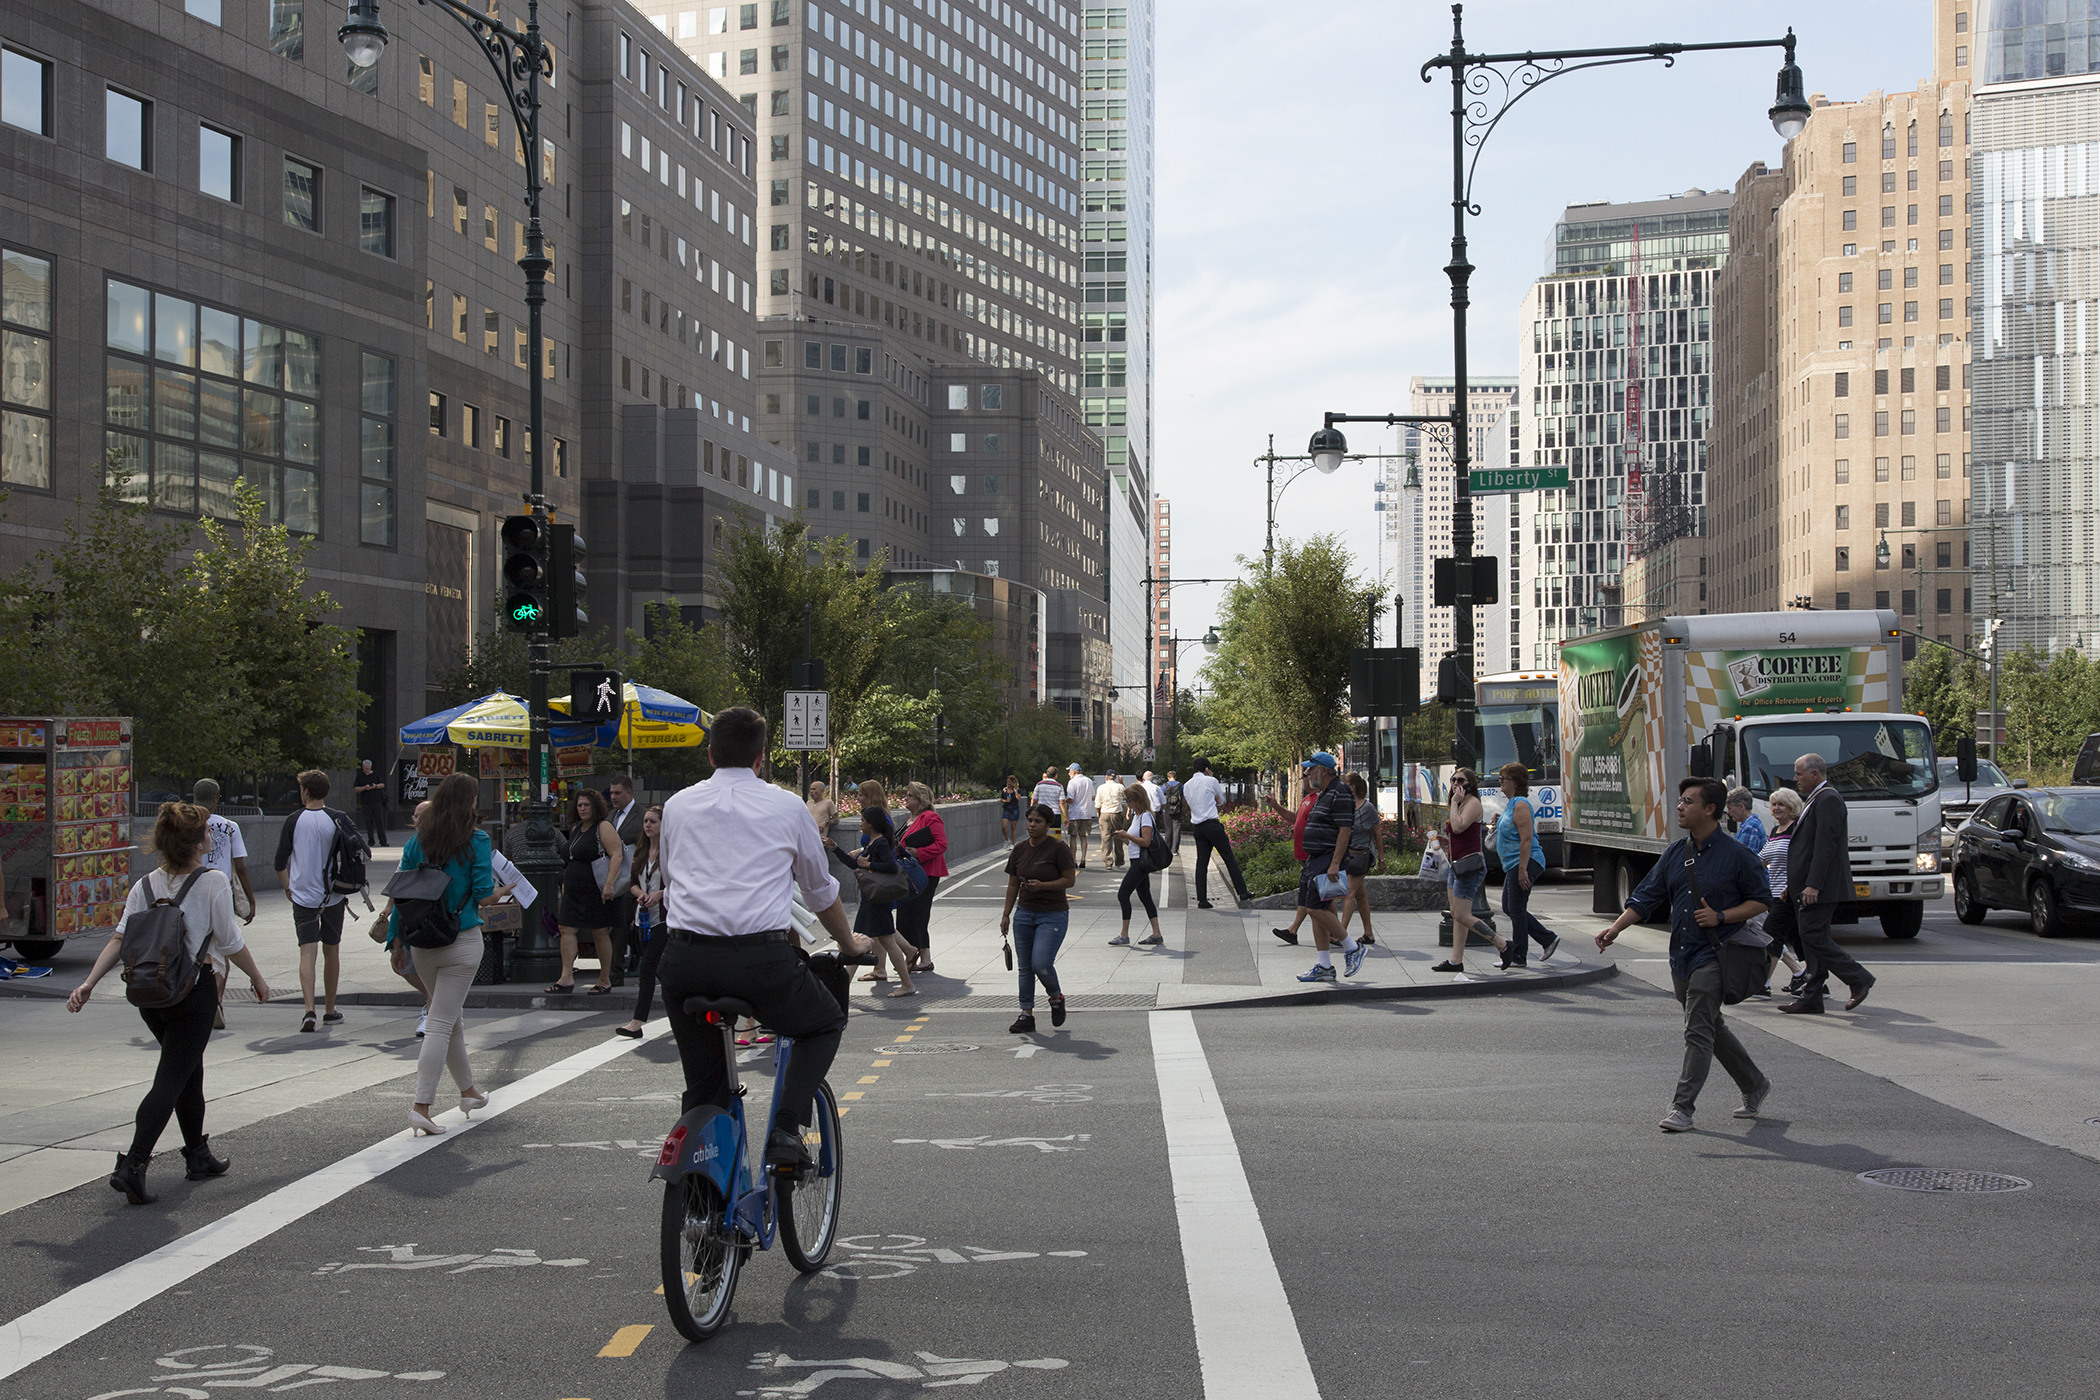 Commuters on the bustling bike path and corner of Liberty and West Streets, New York.